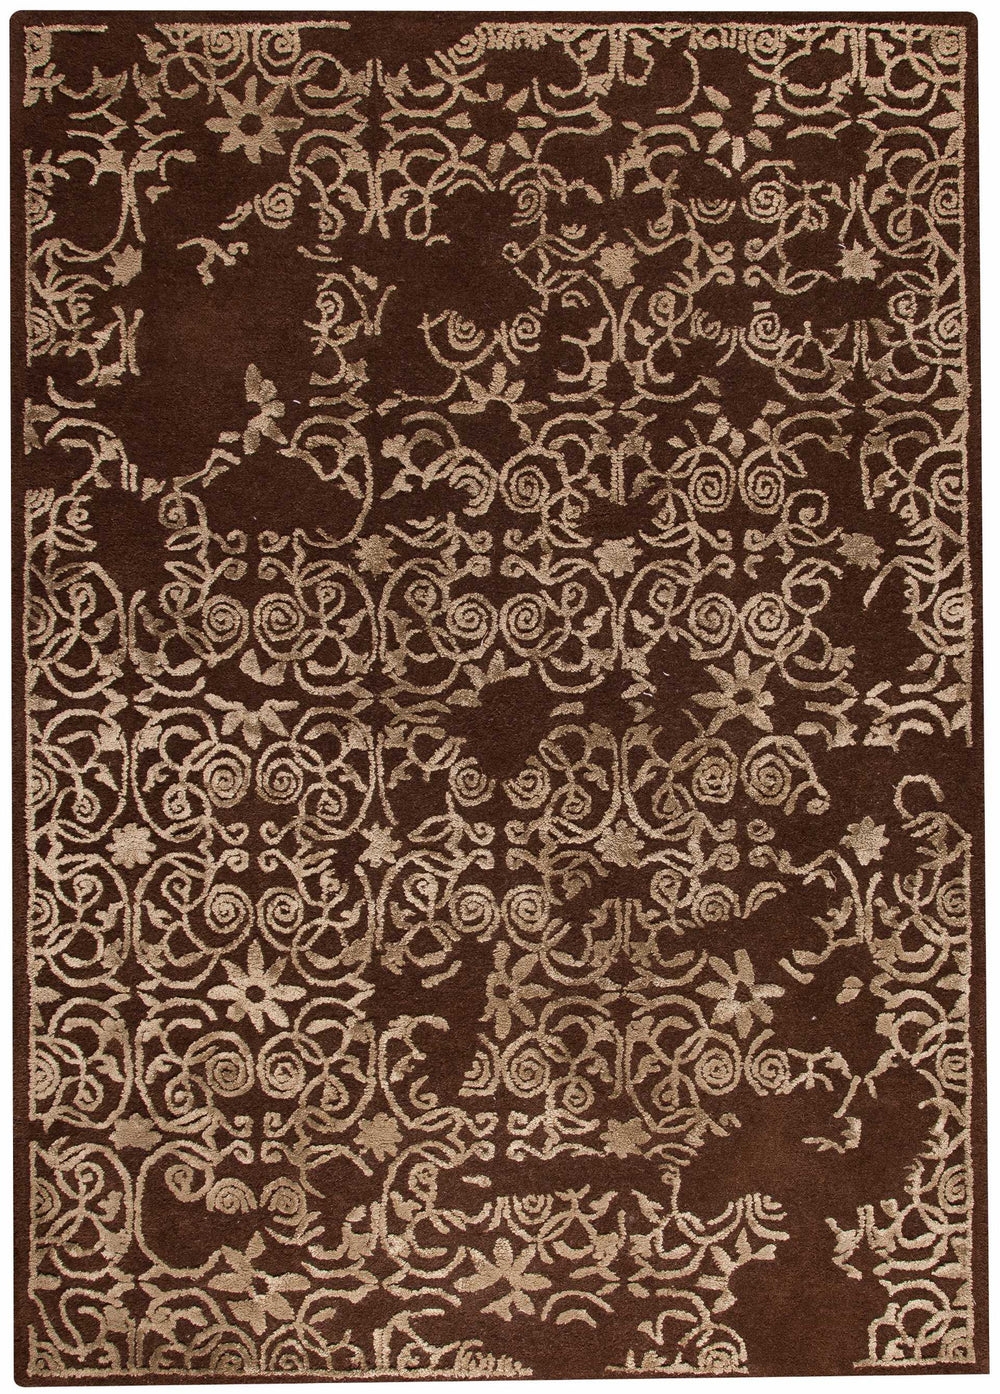 MAT The Basics 13WVT Illusion Area Rug